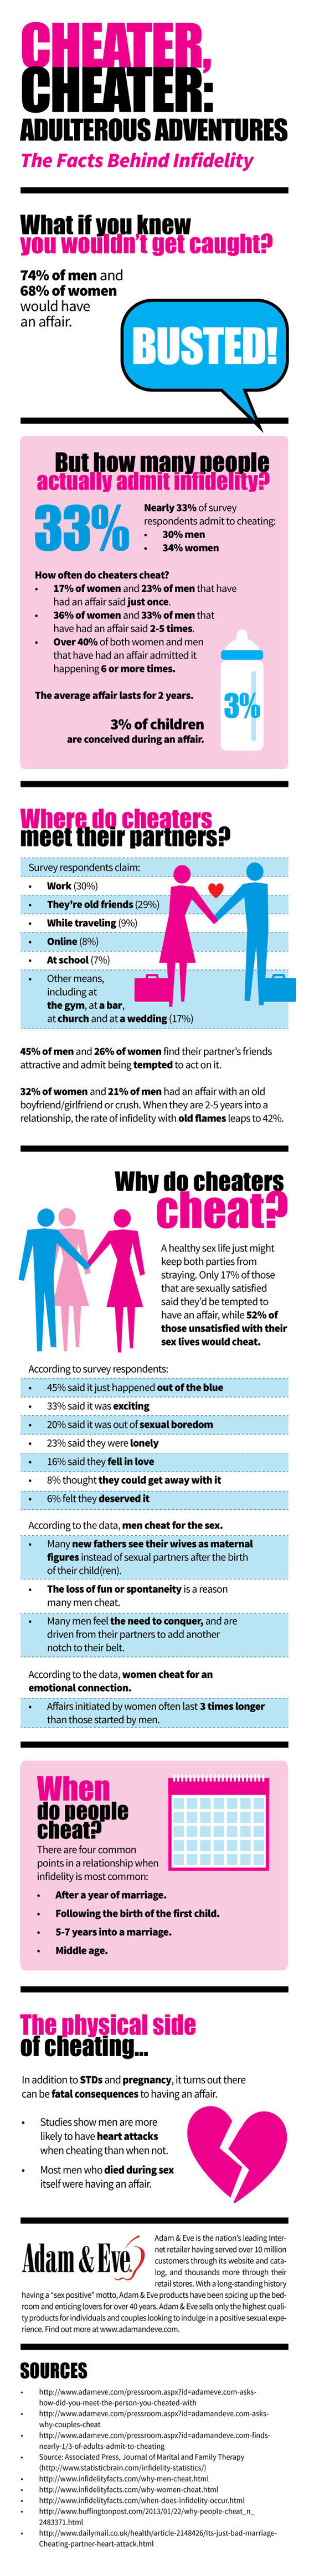 Facts-About-Infidelity (1)